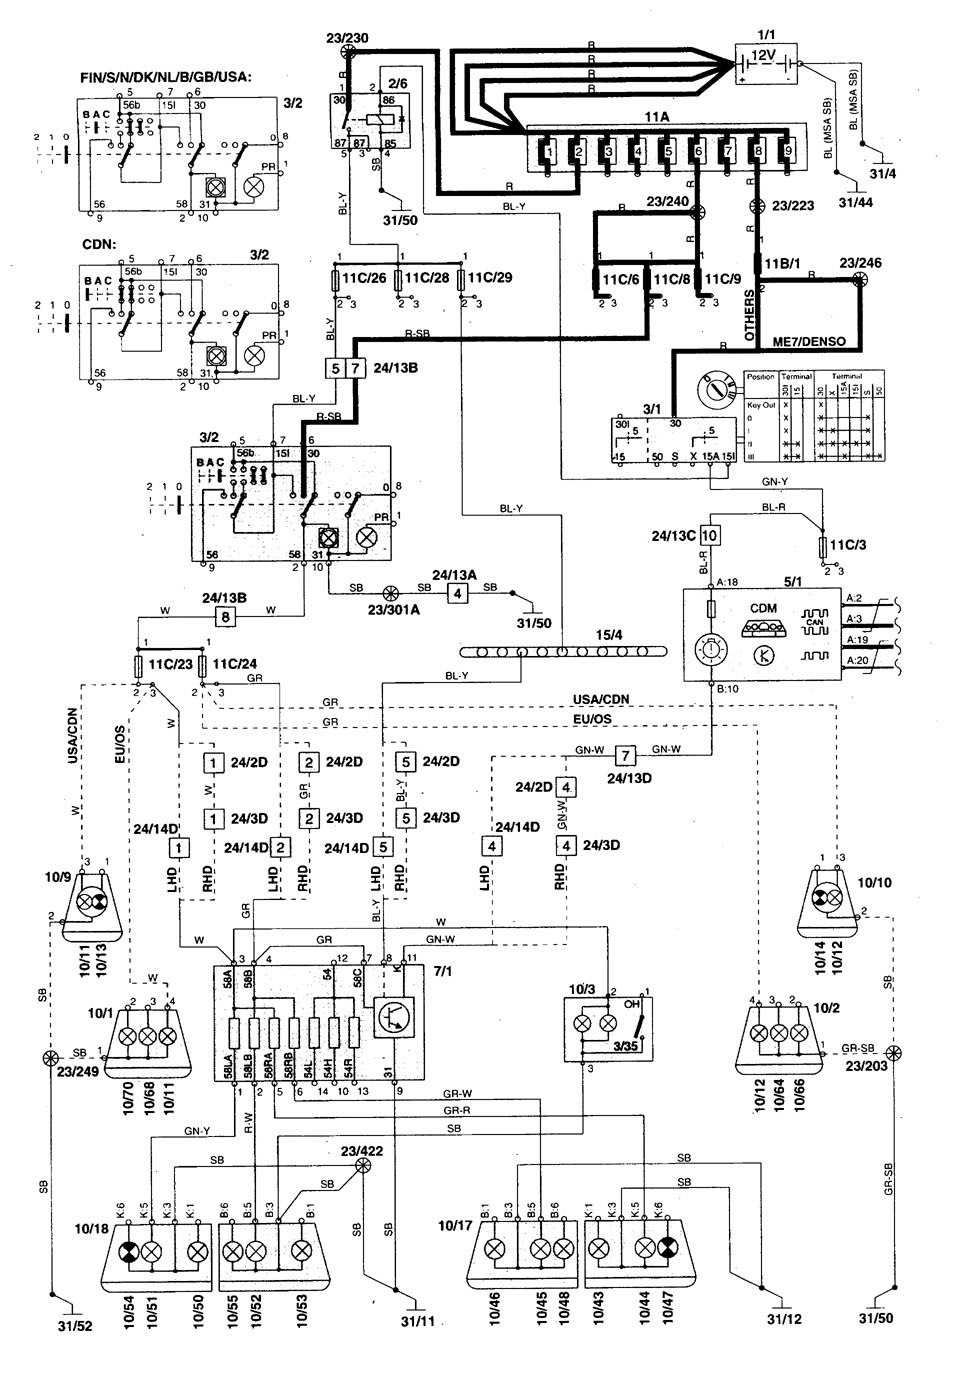 Volvo 850 Voltage Diagram Free Wiring For You Harness 1996 Schematics Rh 18 2 4 Schlaglicht Regional De